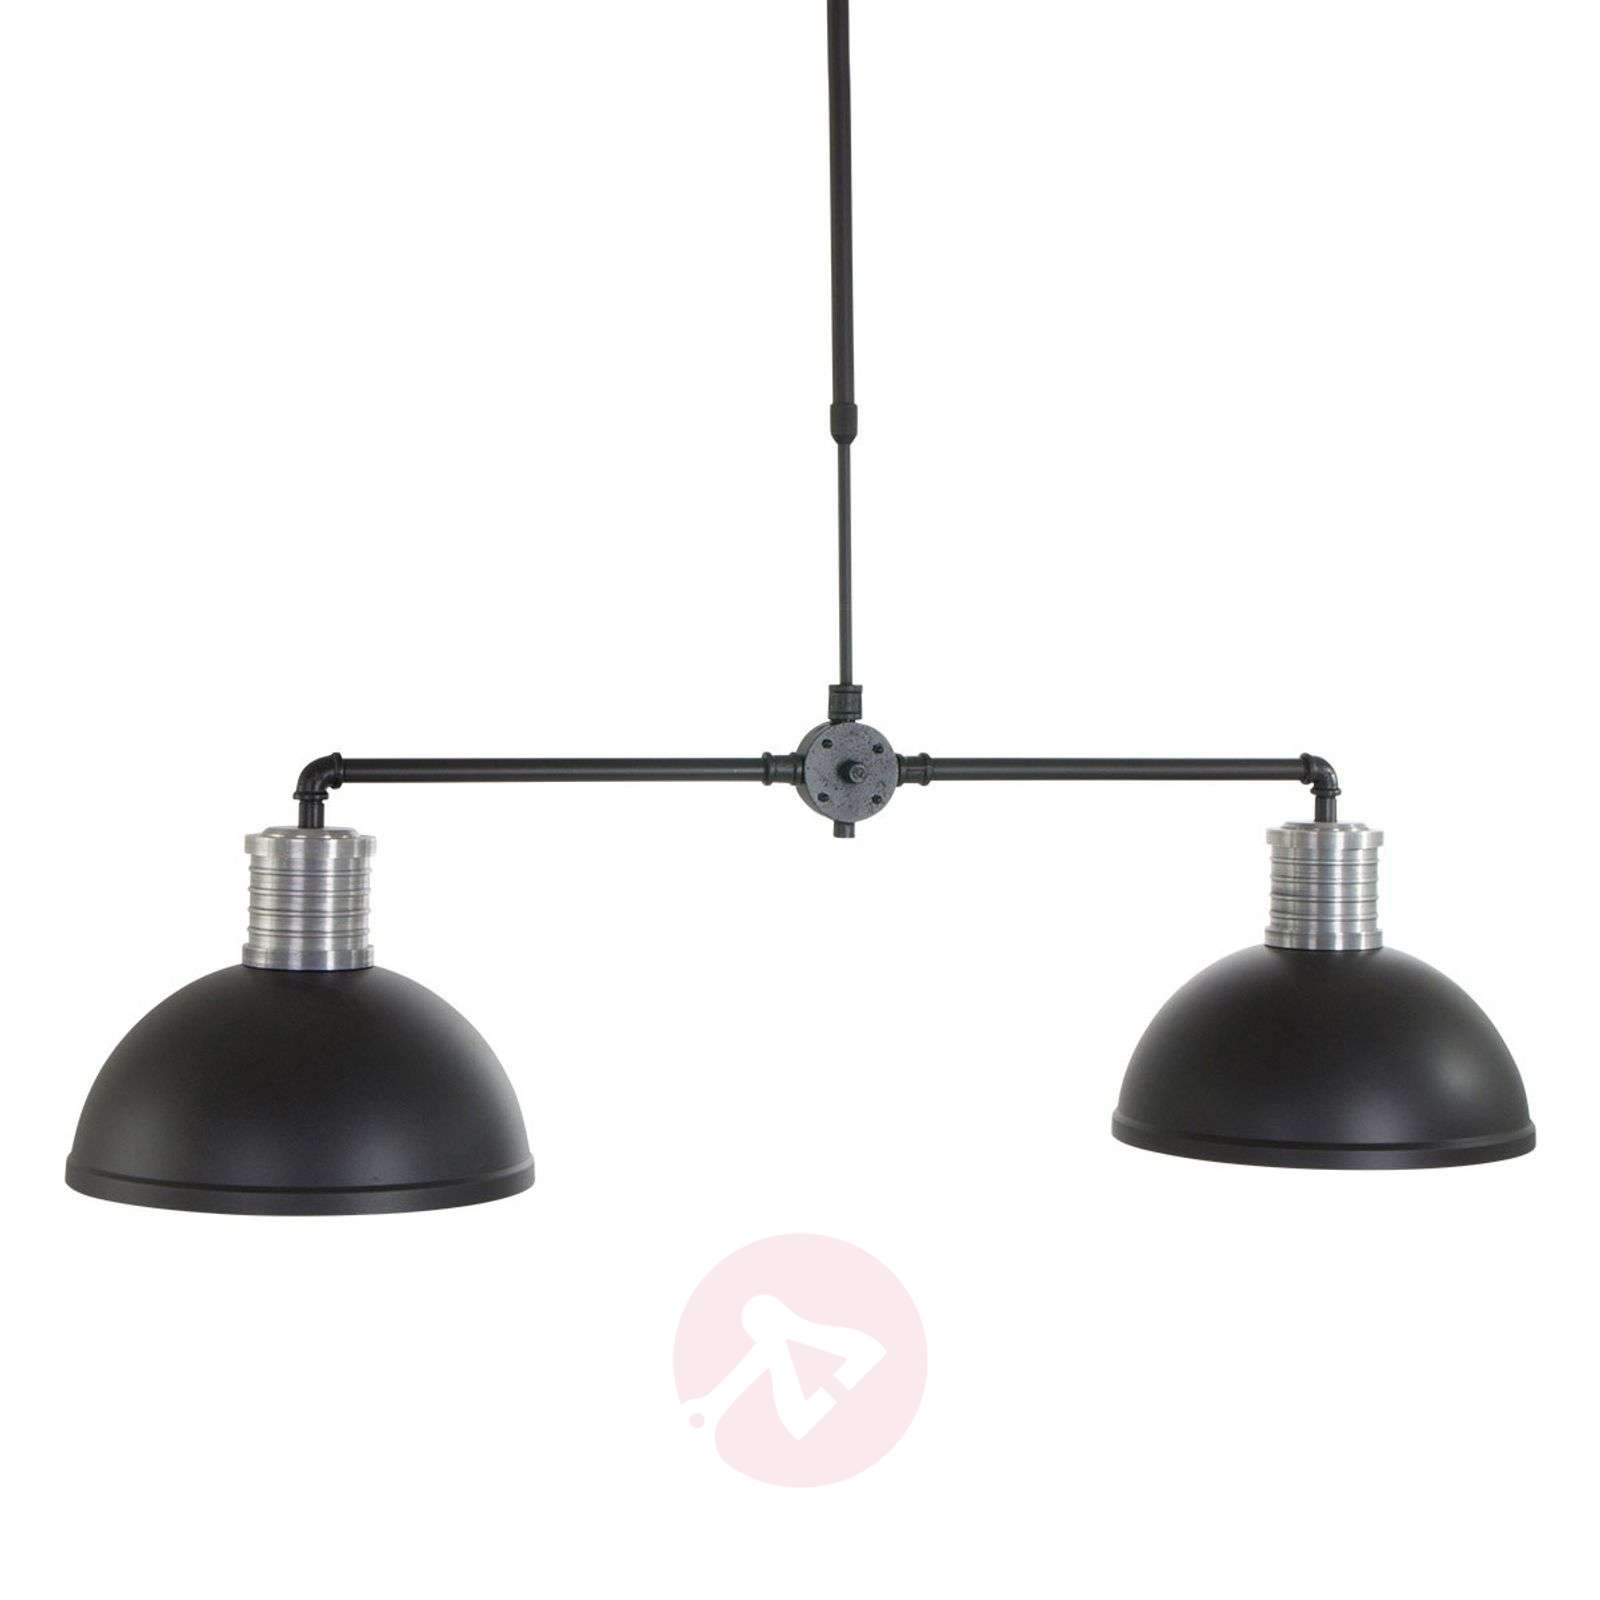 pendant lamp wonderful lamps rustic most black reading lighting industrial flair table design light